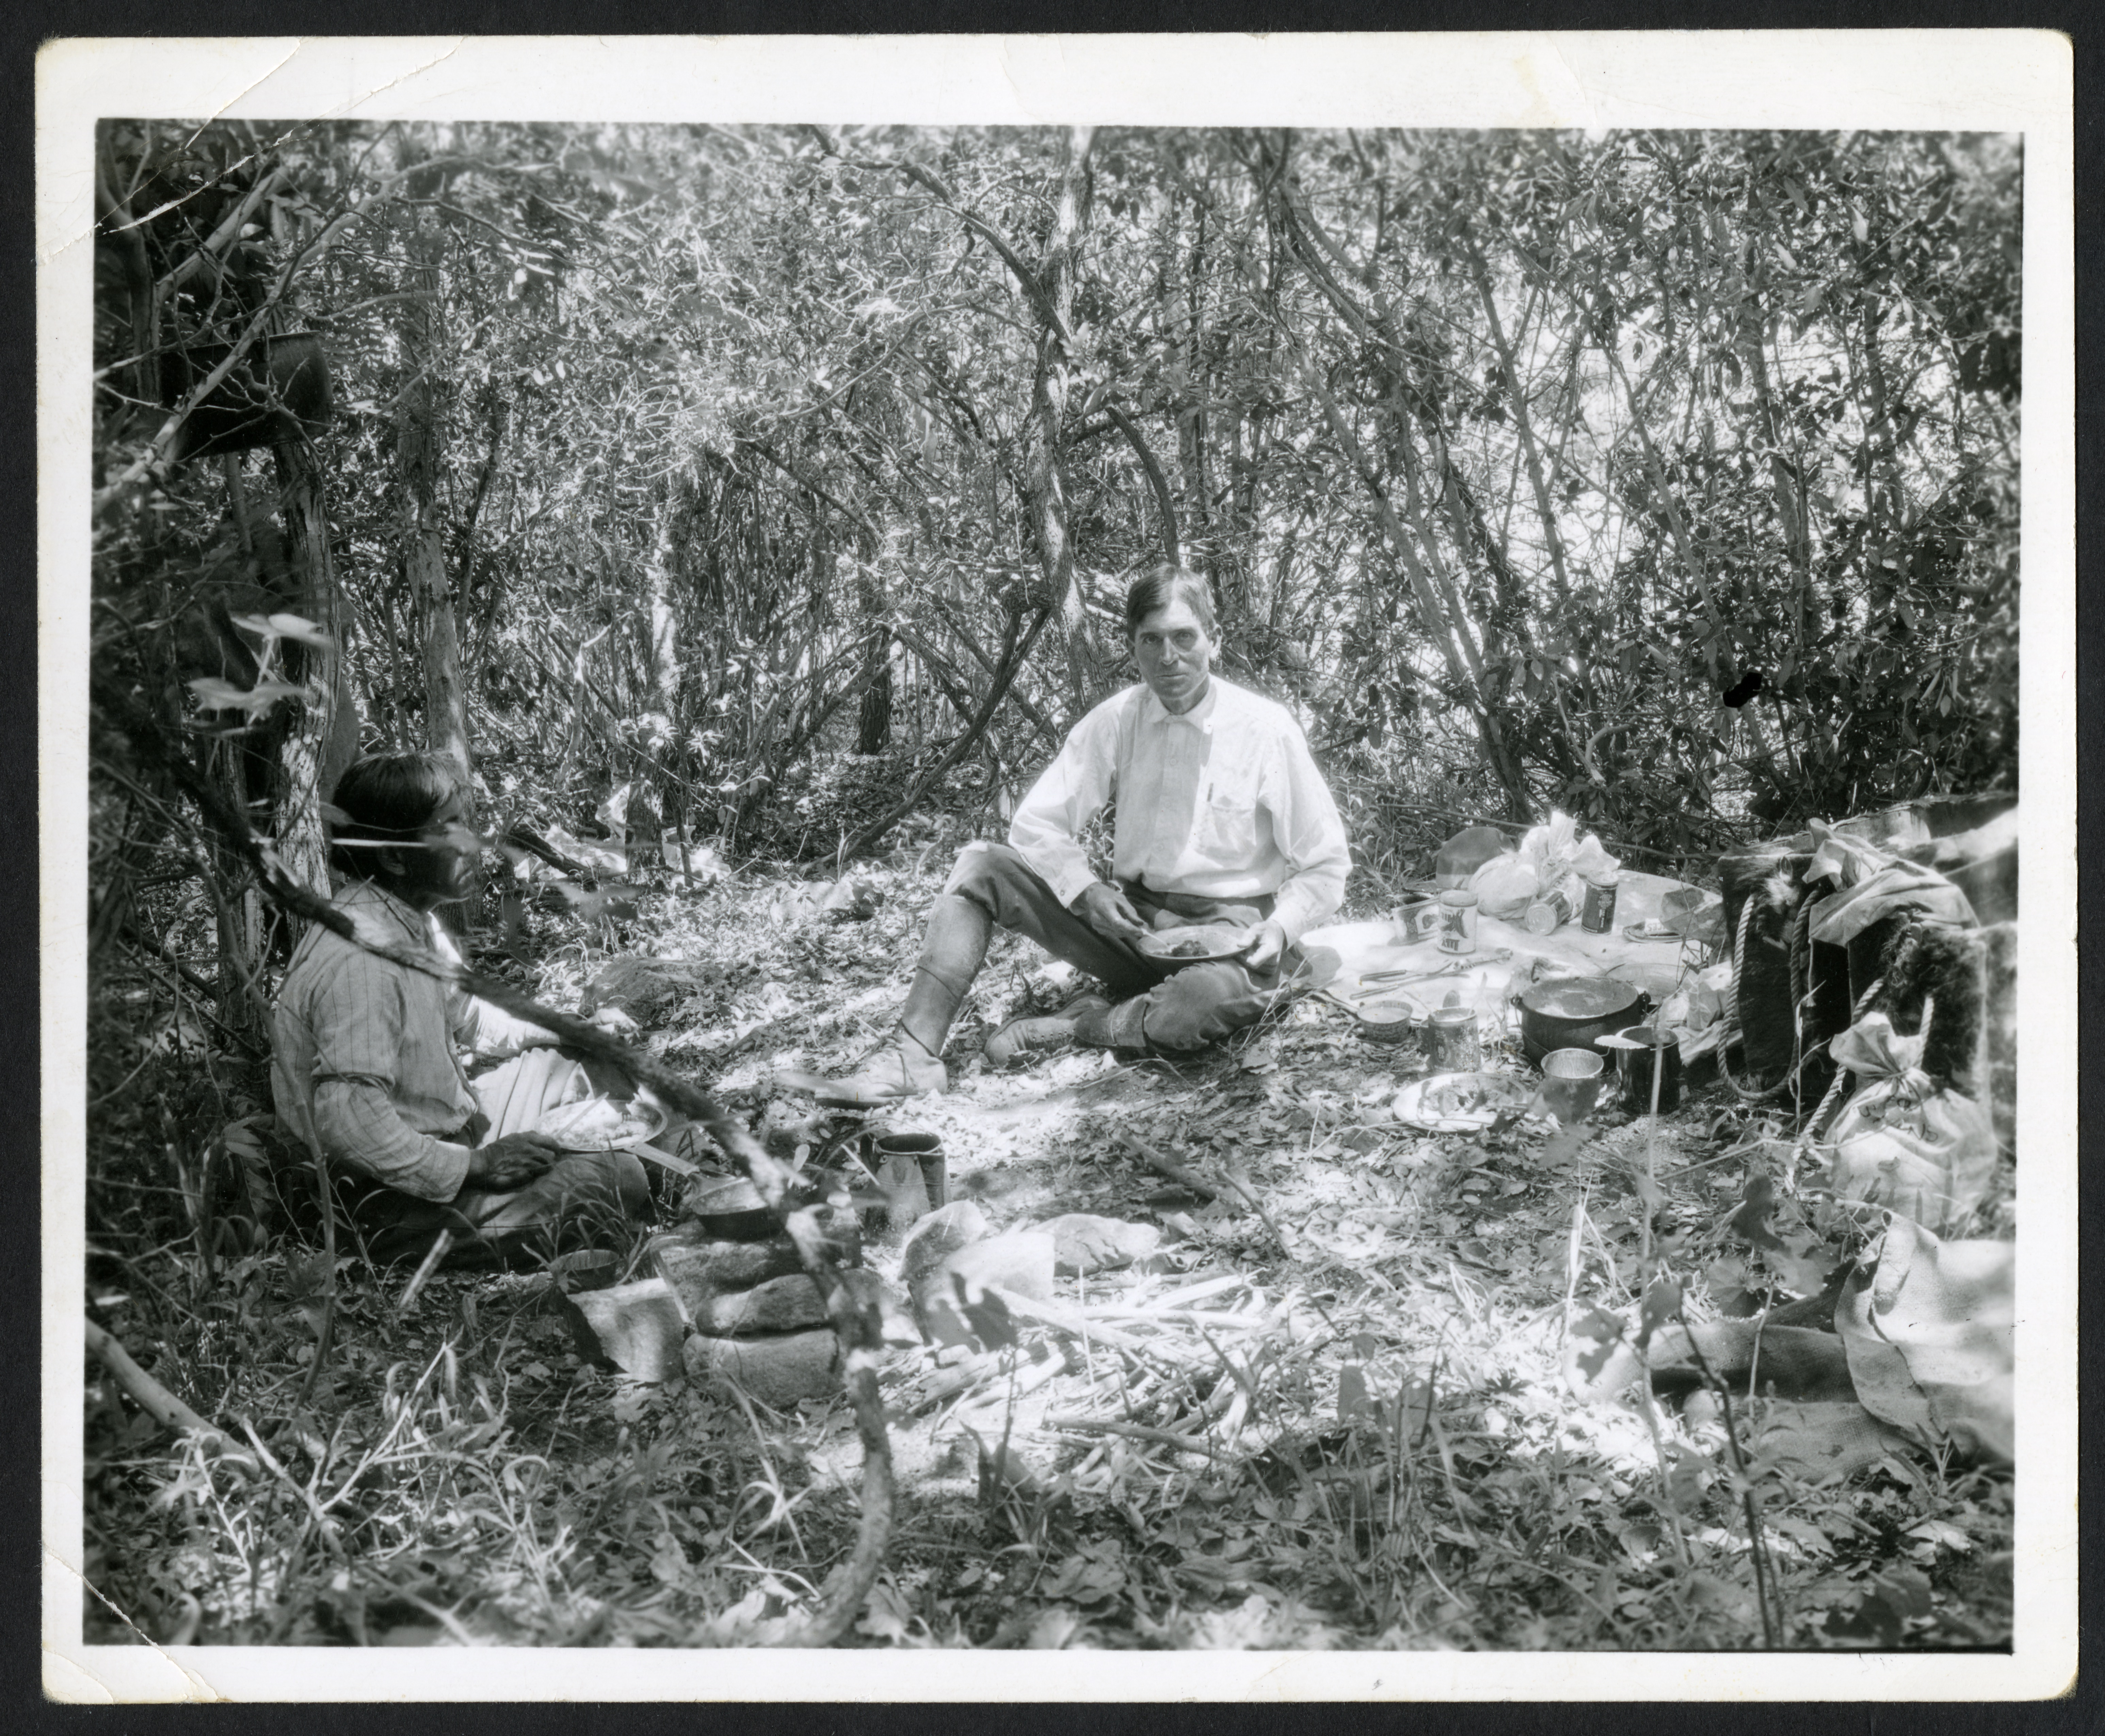 Two men sit in a field around pots and pans.